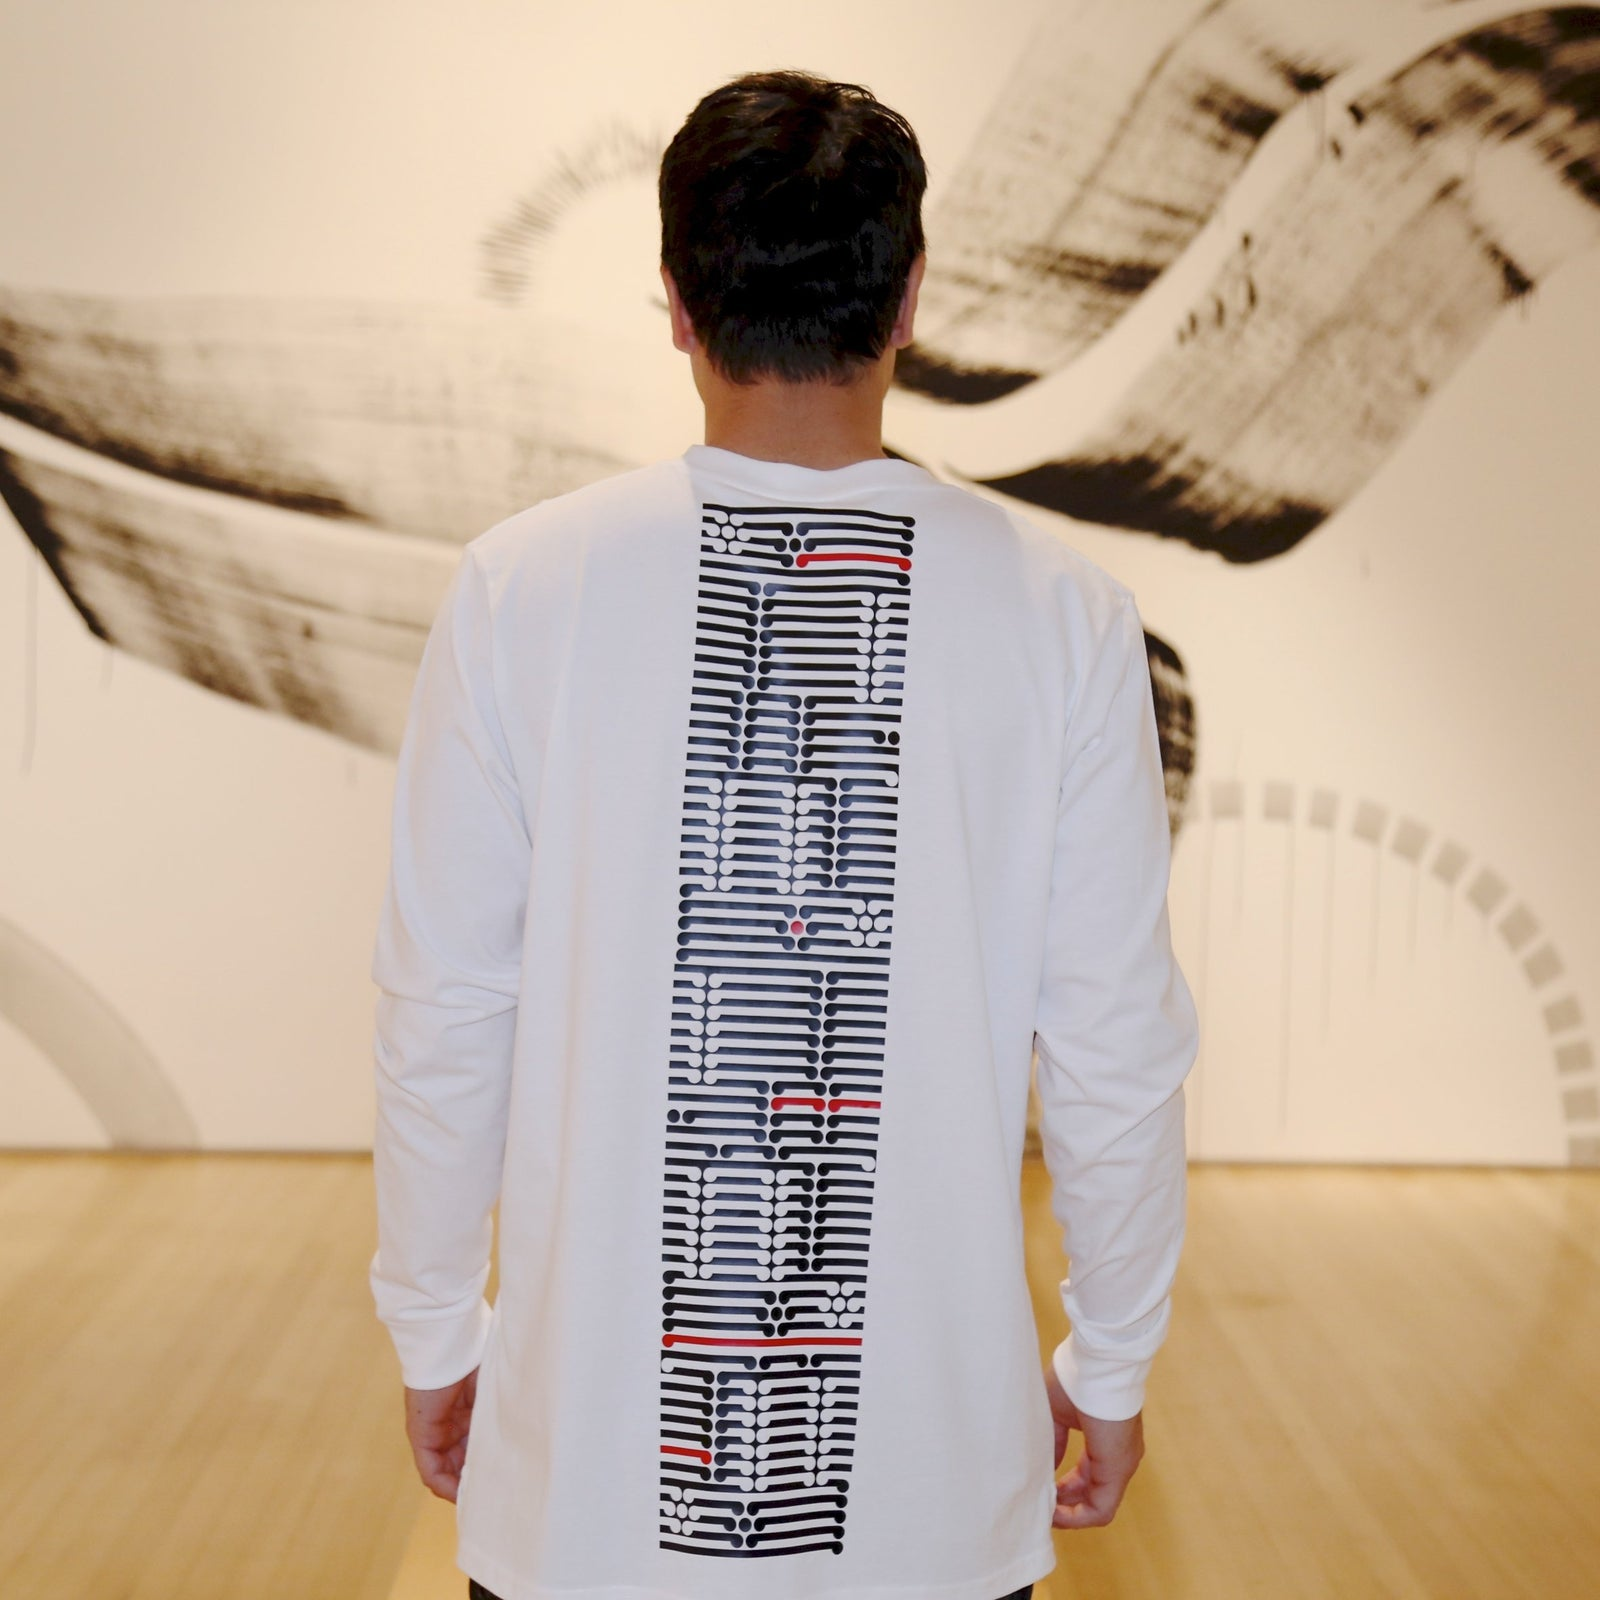 Mens white long sleeve tshirt with black and red ta moko designed back